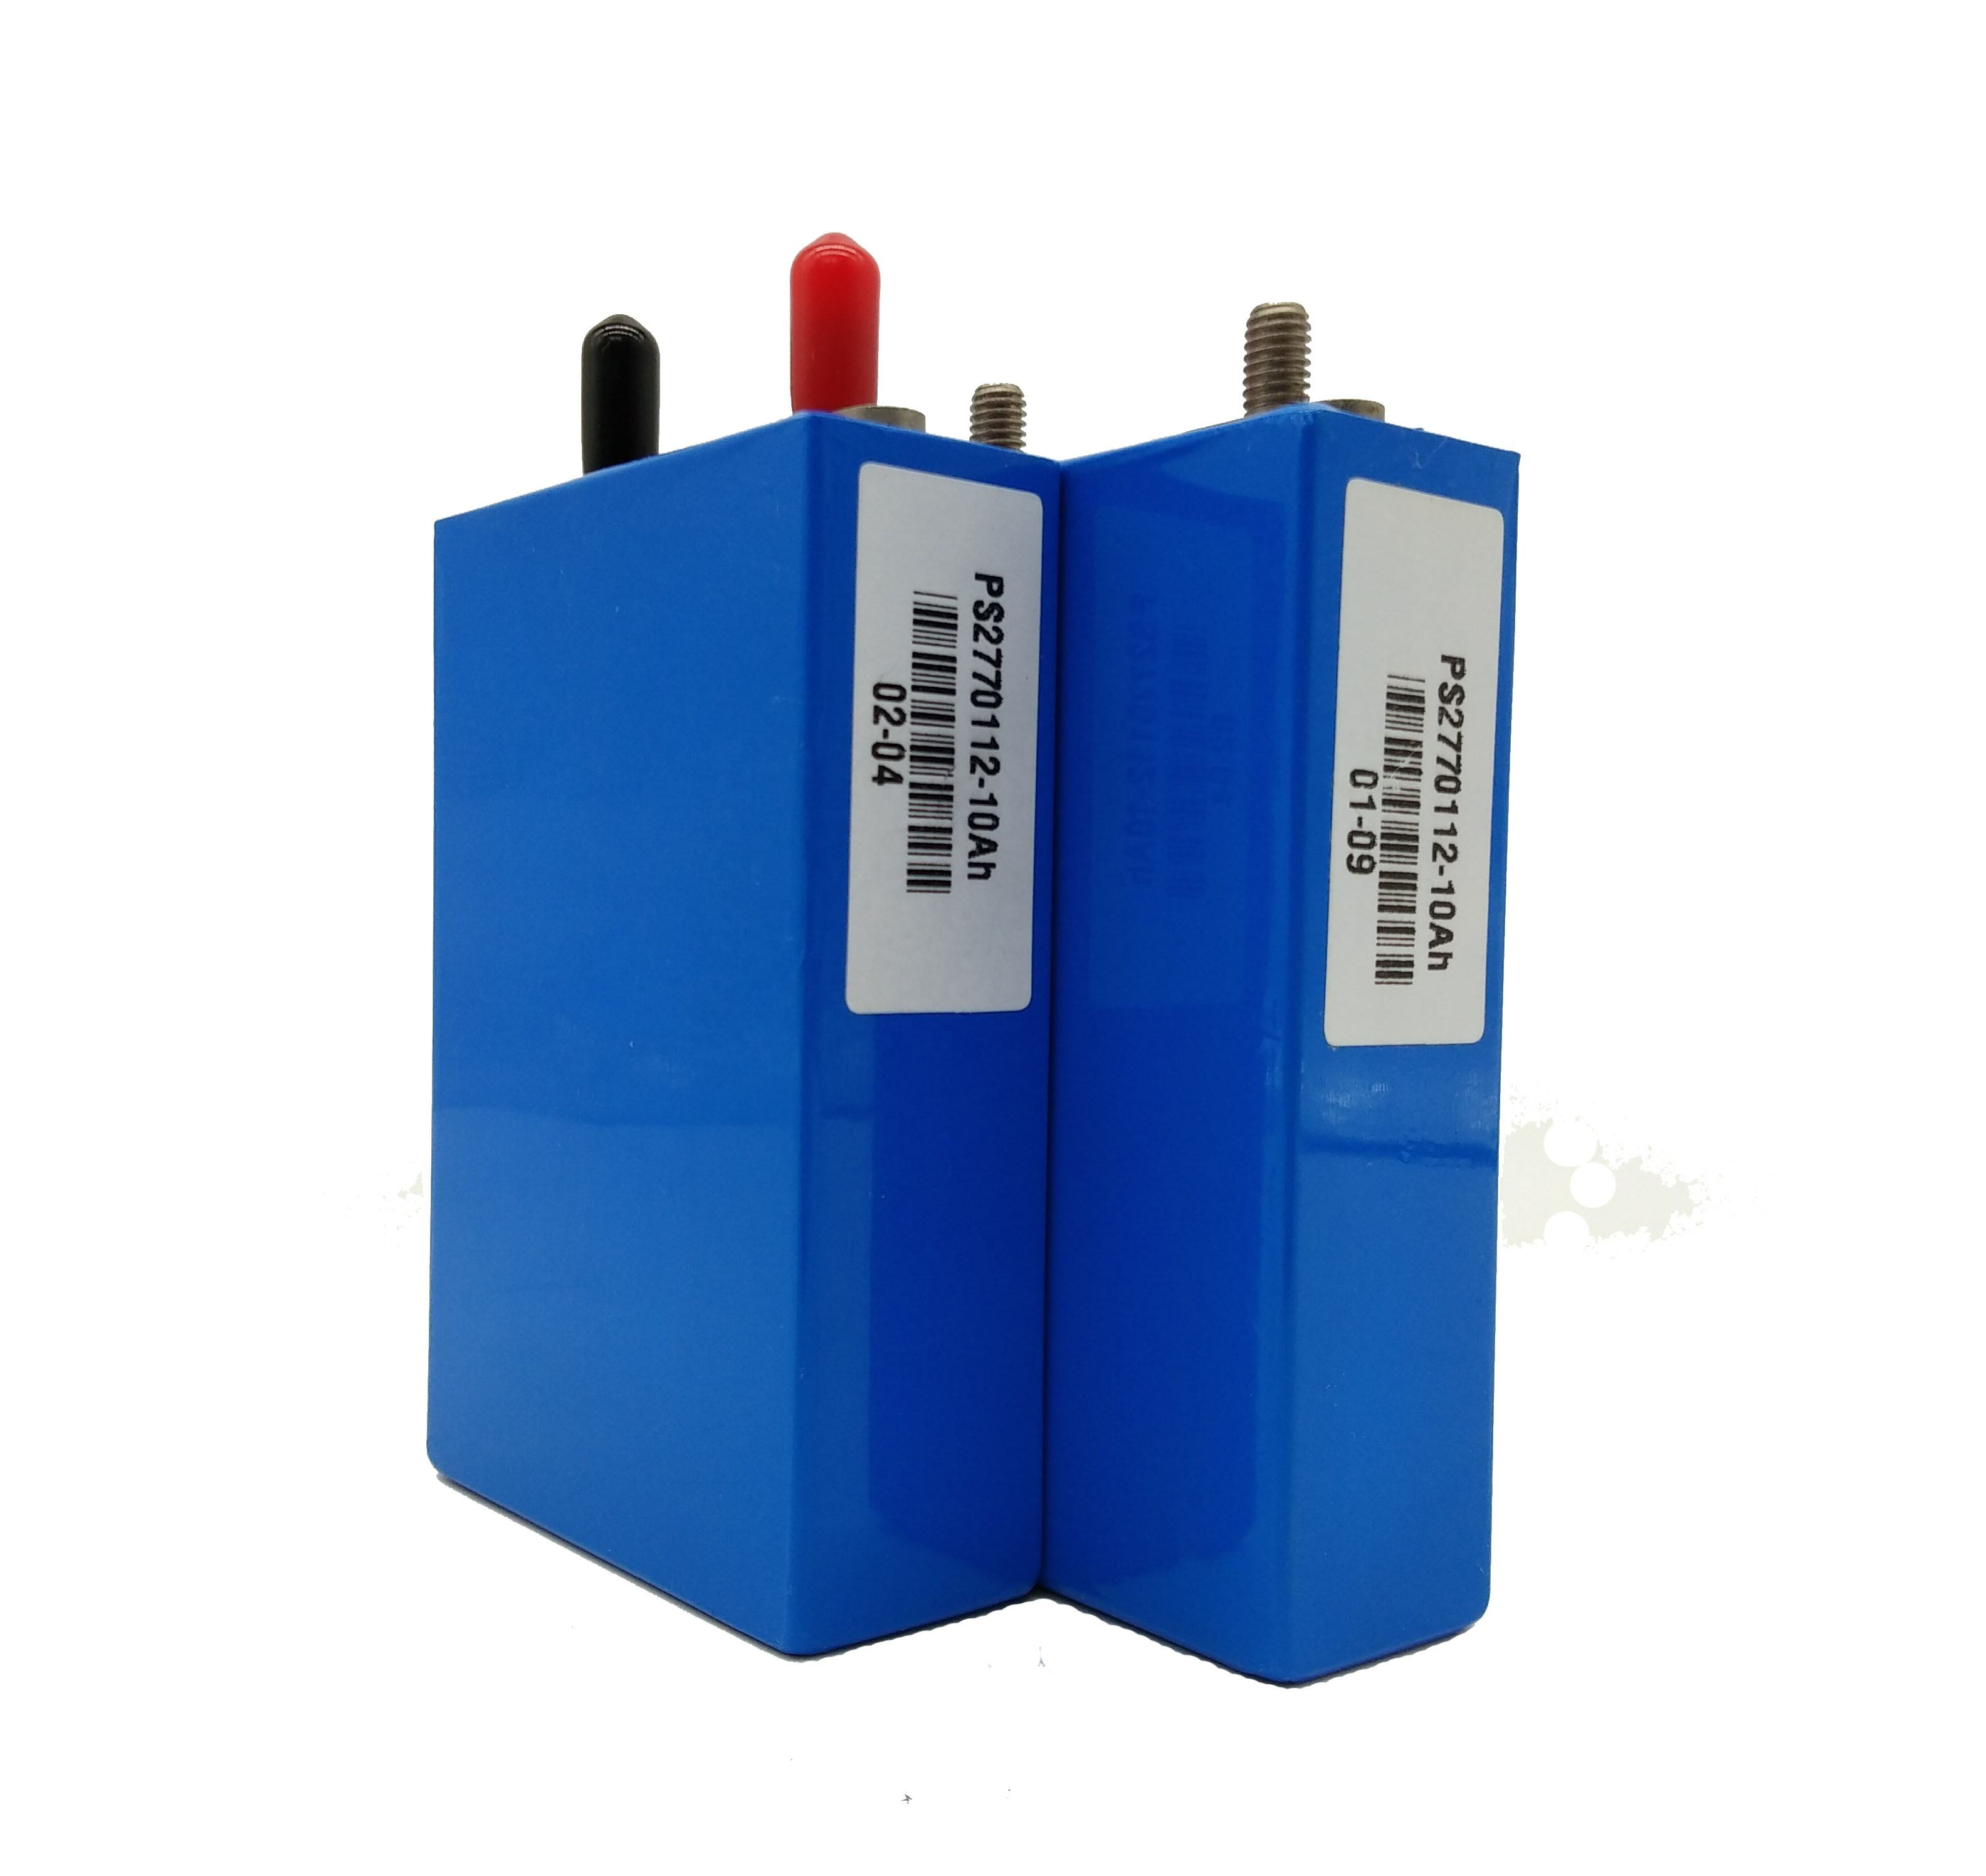 Lifepo4 Cell Manufacturer BIS Certified Lithium Battery Prismatic Cells Lifepo4 10Ah Go Kart Battery 3.2V LFP Cell for Go Kart